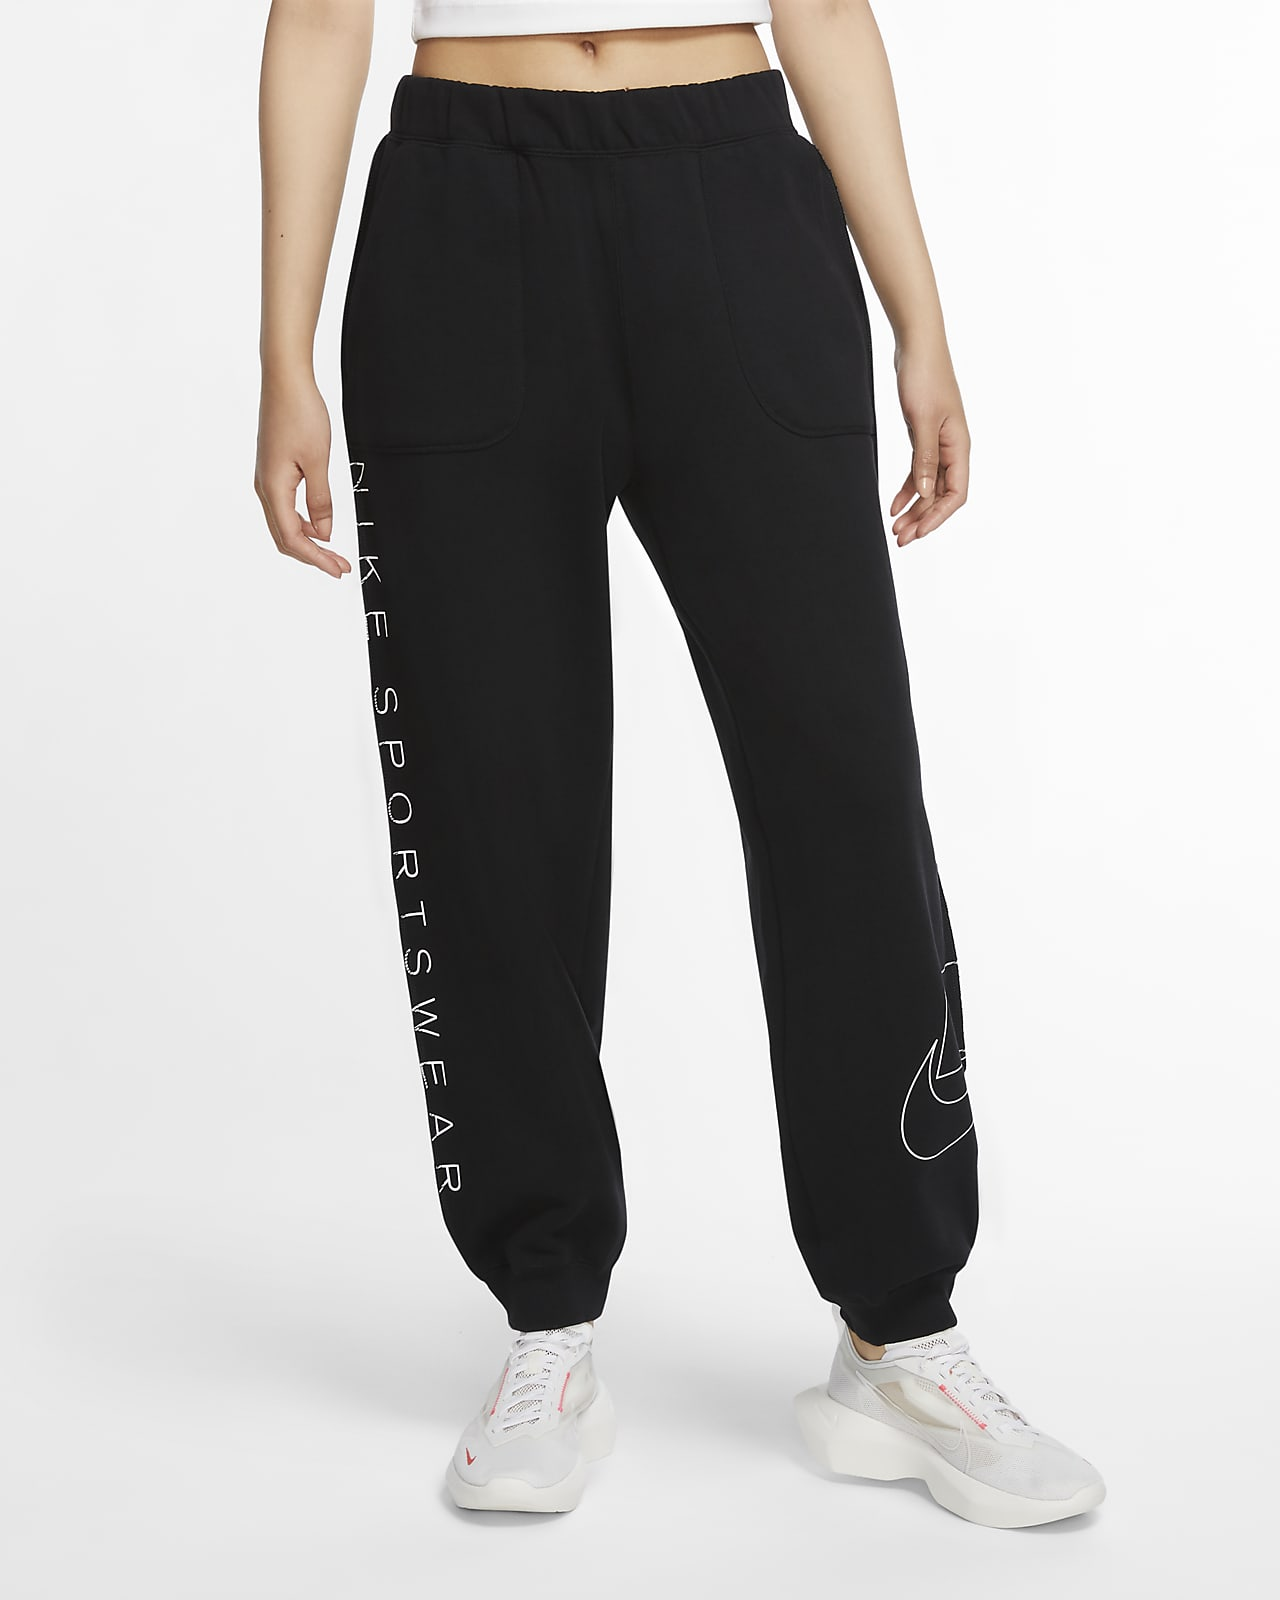 Nike Sportswear NSW Women's Fleece Trousers